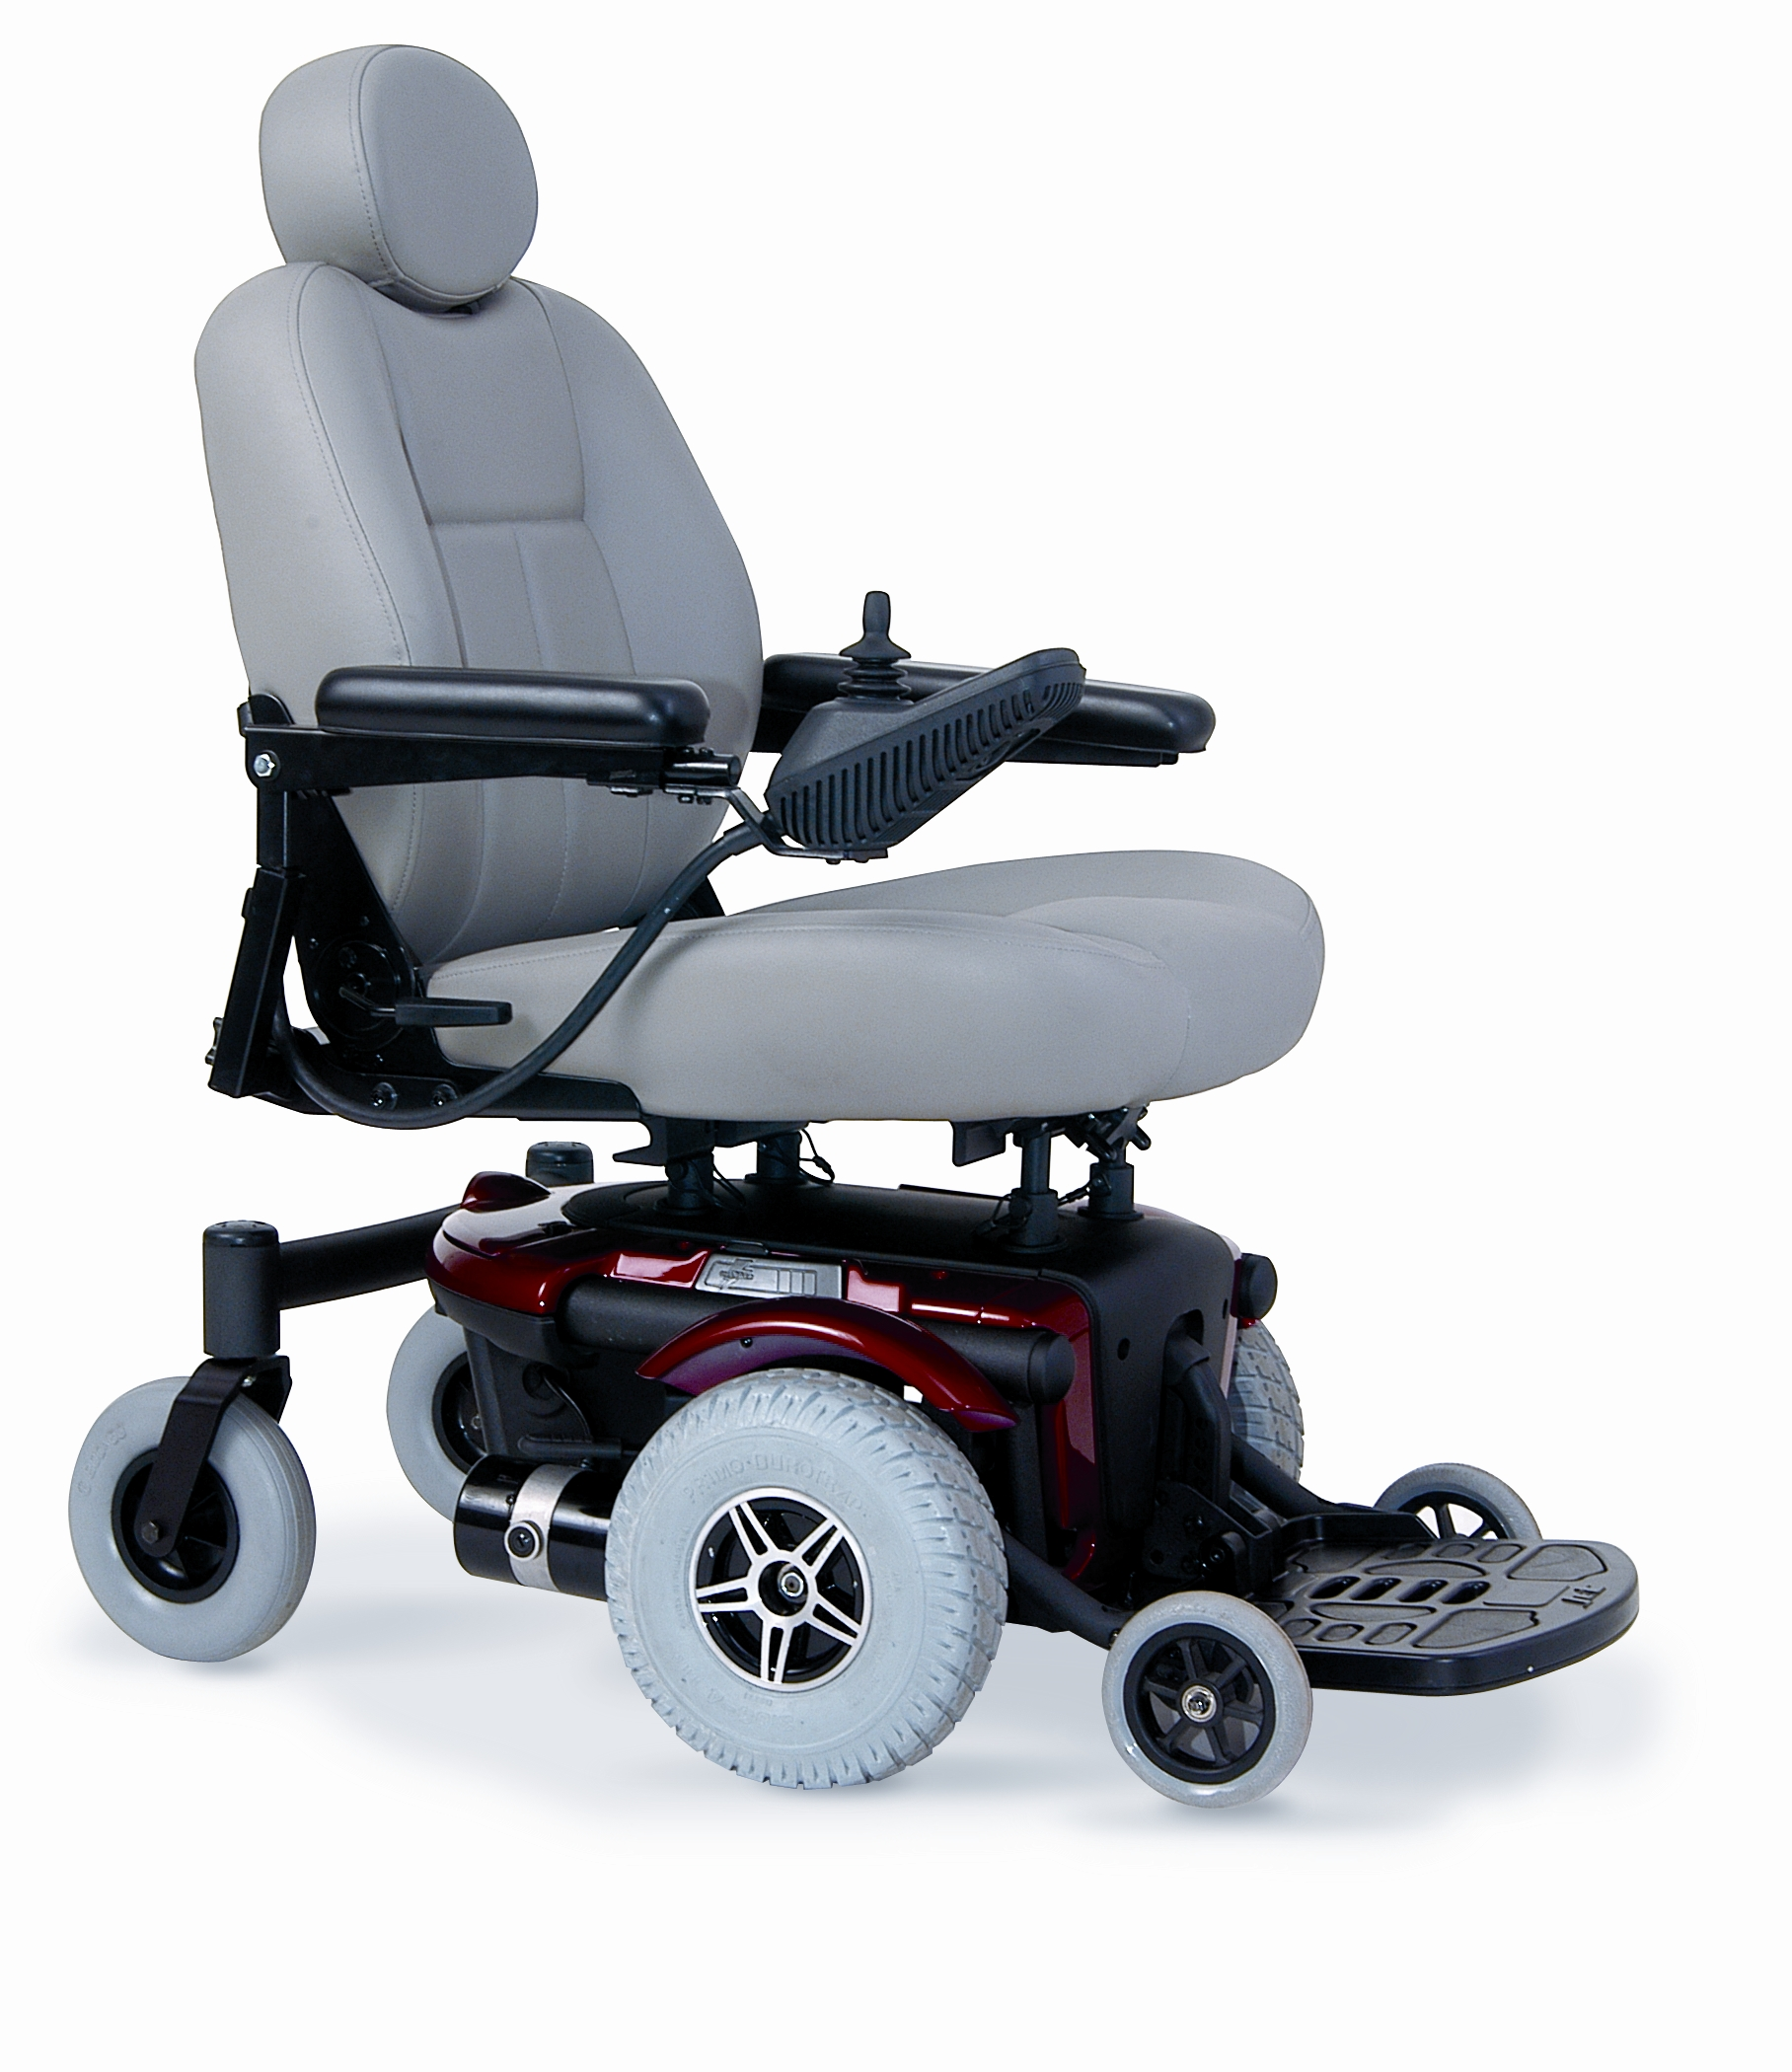 jet3ultraHB pride jazzy jet 3 ultra electric wheelchair  at eliteediting.co